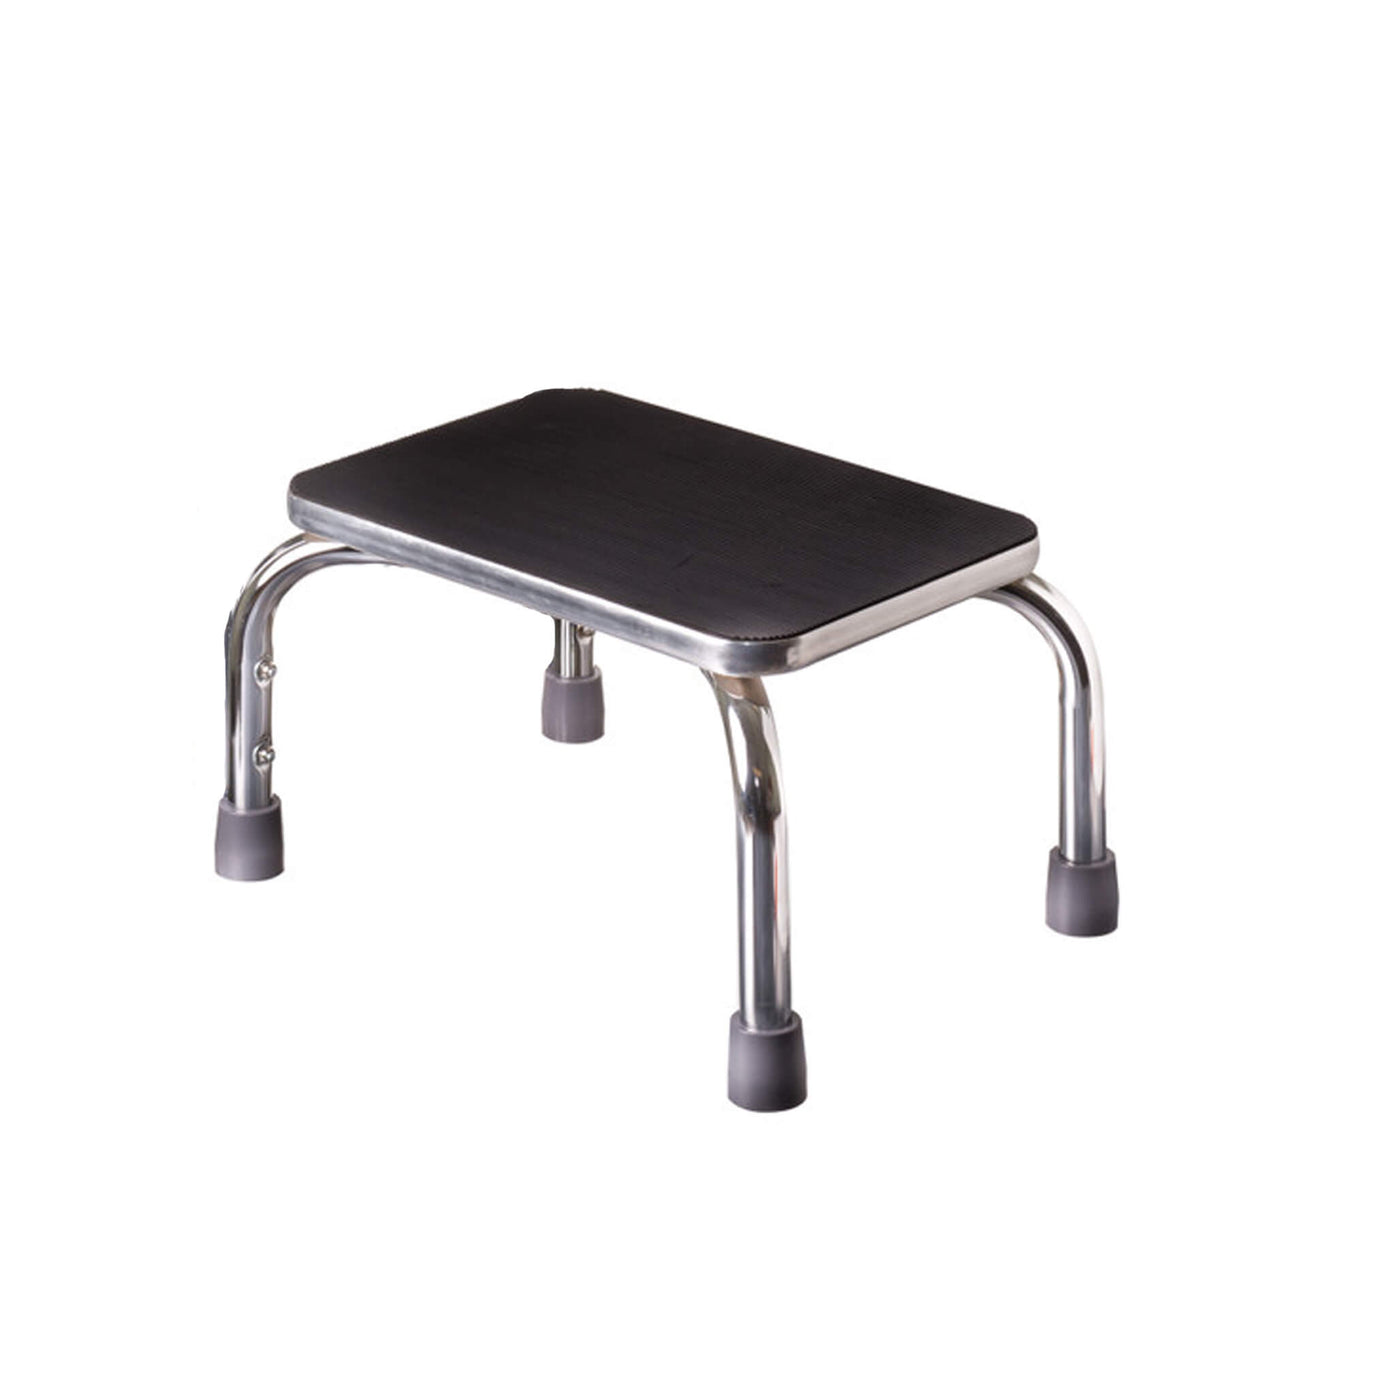 Astounding Dmi Heavy Duty Foot Stool Without Handle At Meridian Ibusinesslaw Wood Chair Design Ideas Ibusinesslaworg